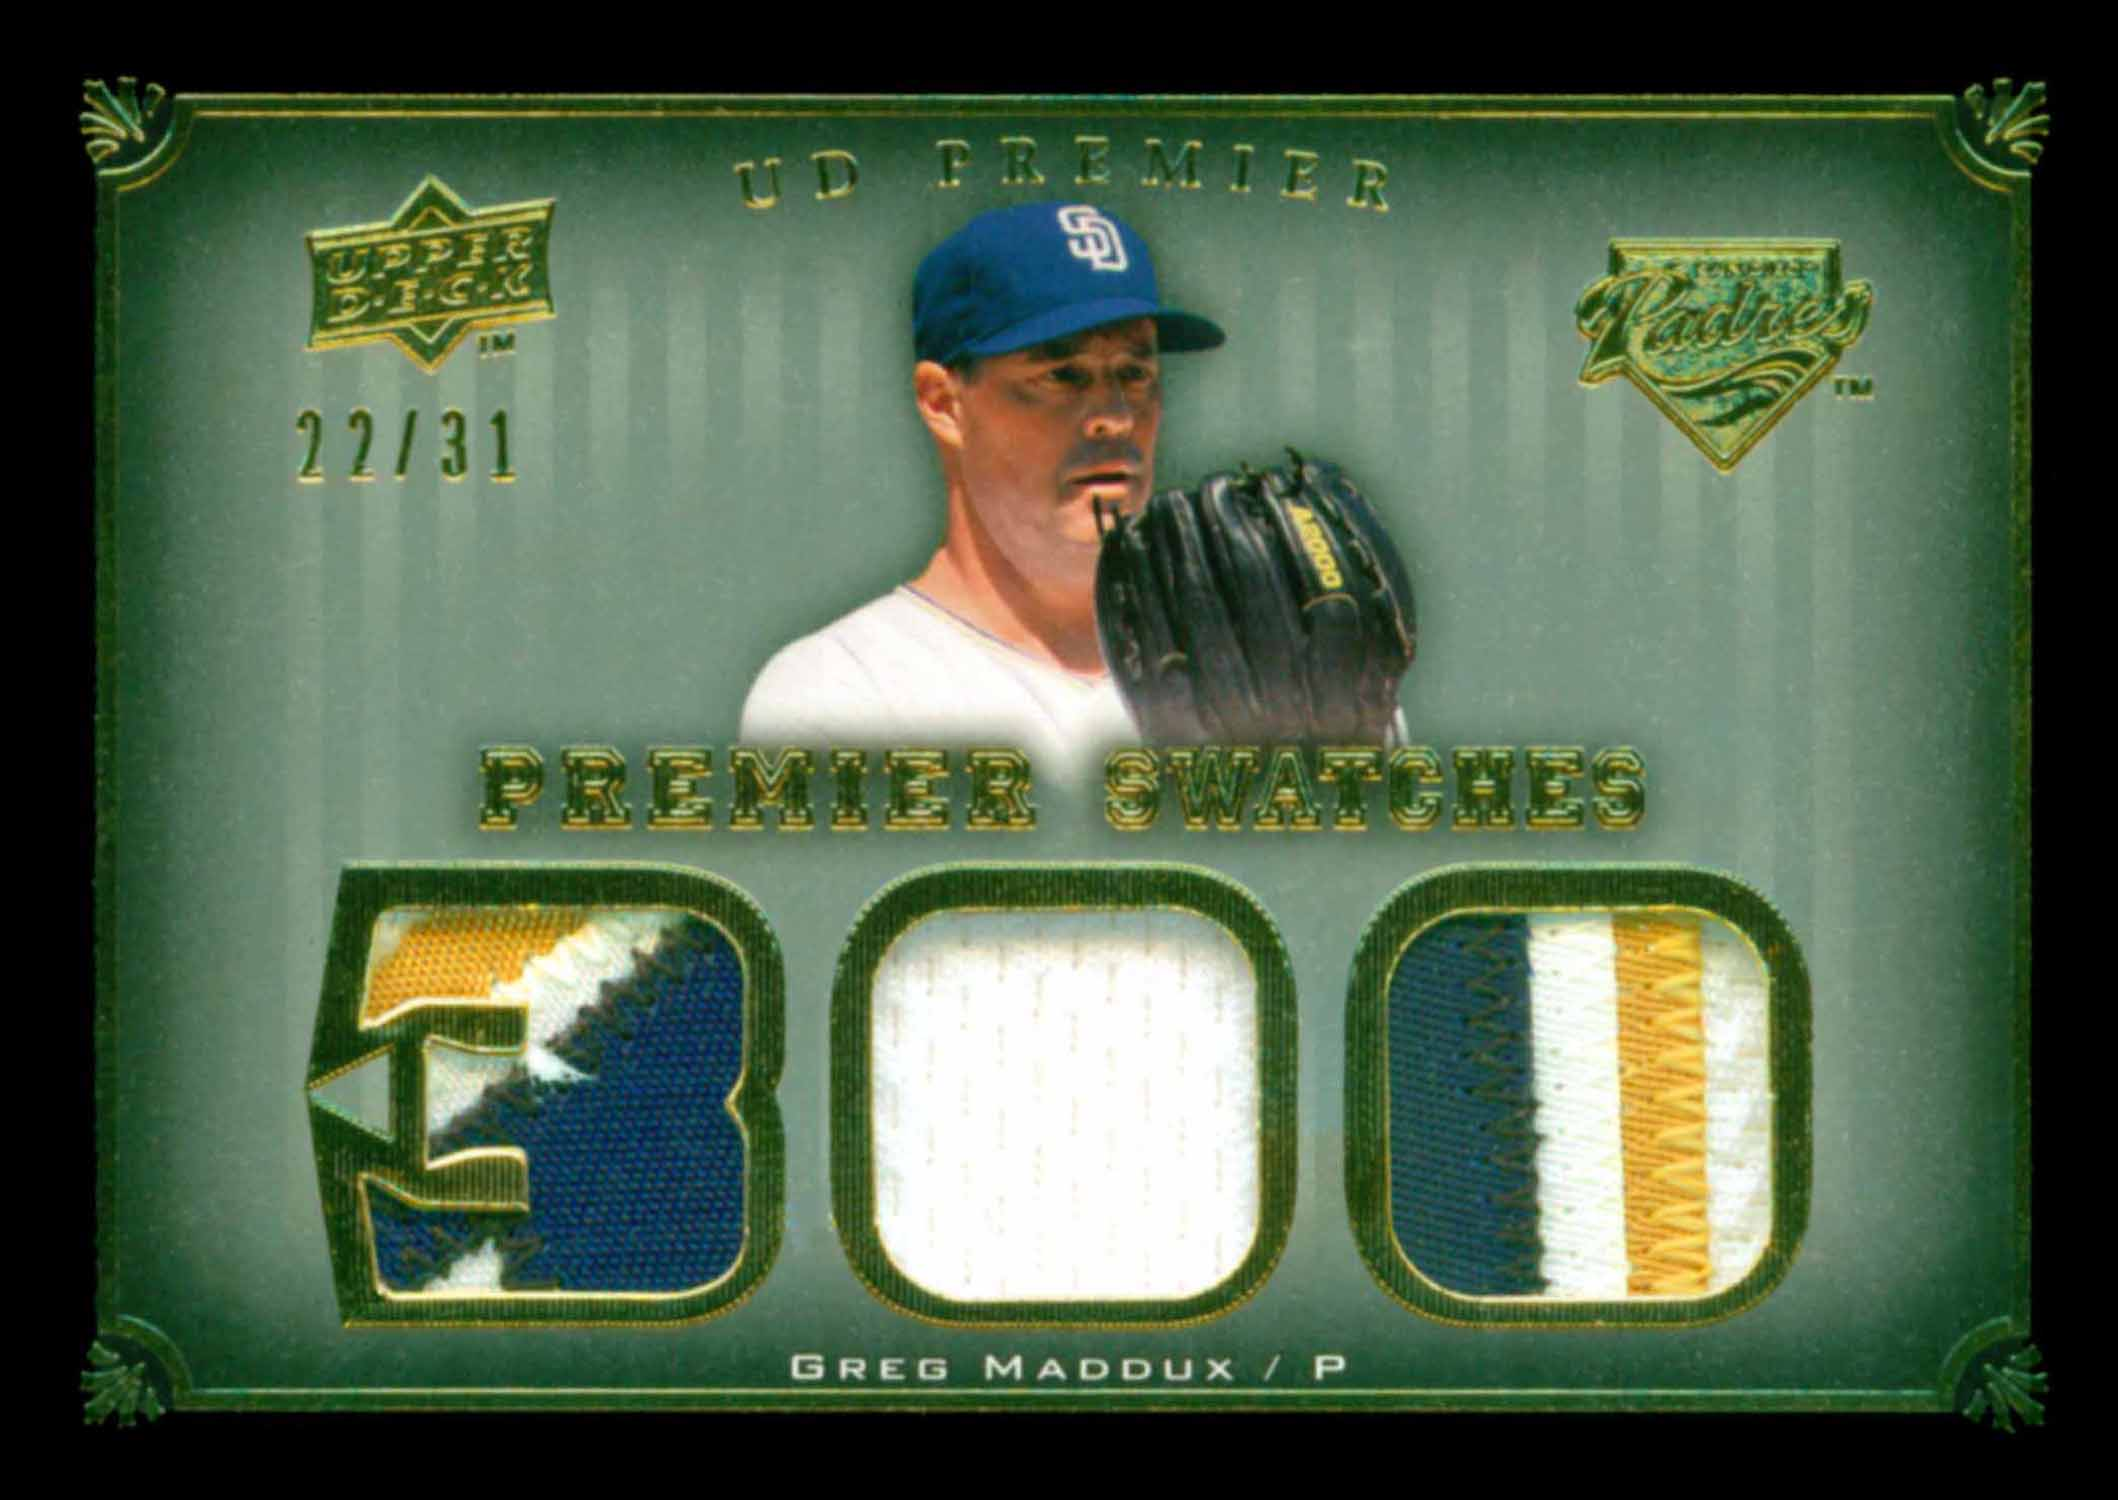 2008 Upper Deck Premier Swatches Jersey Number